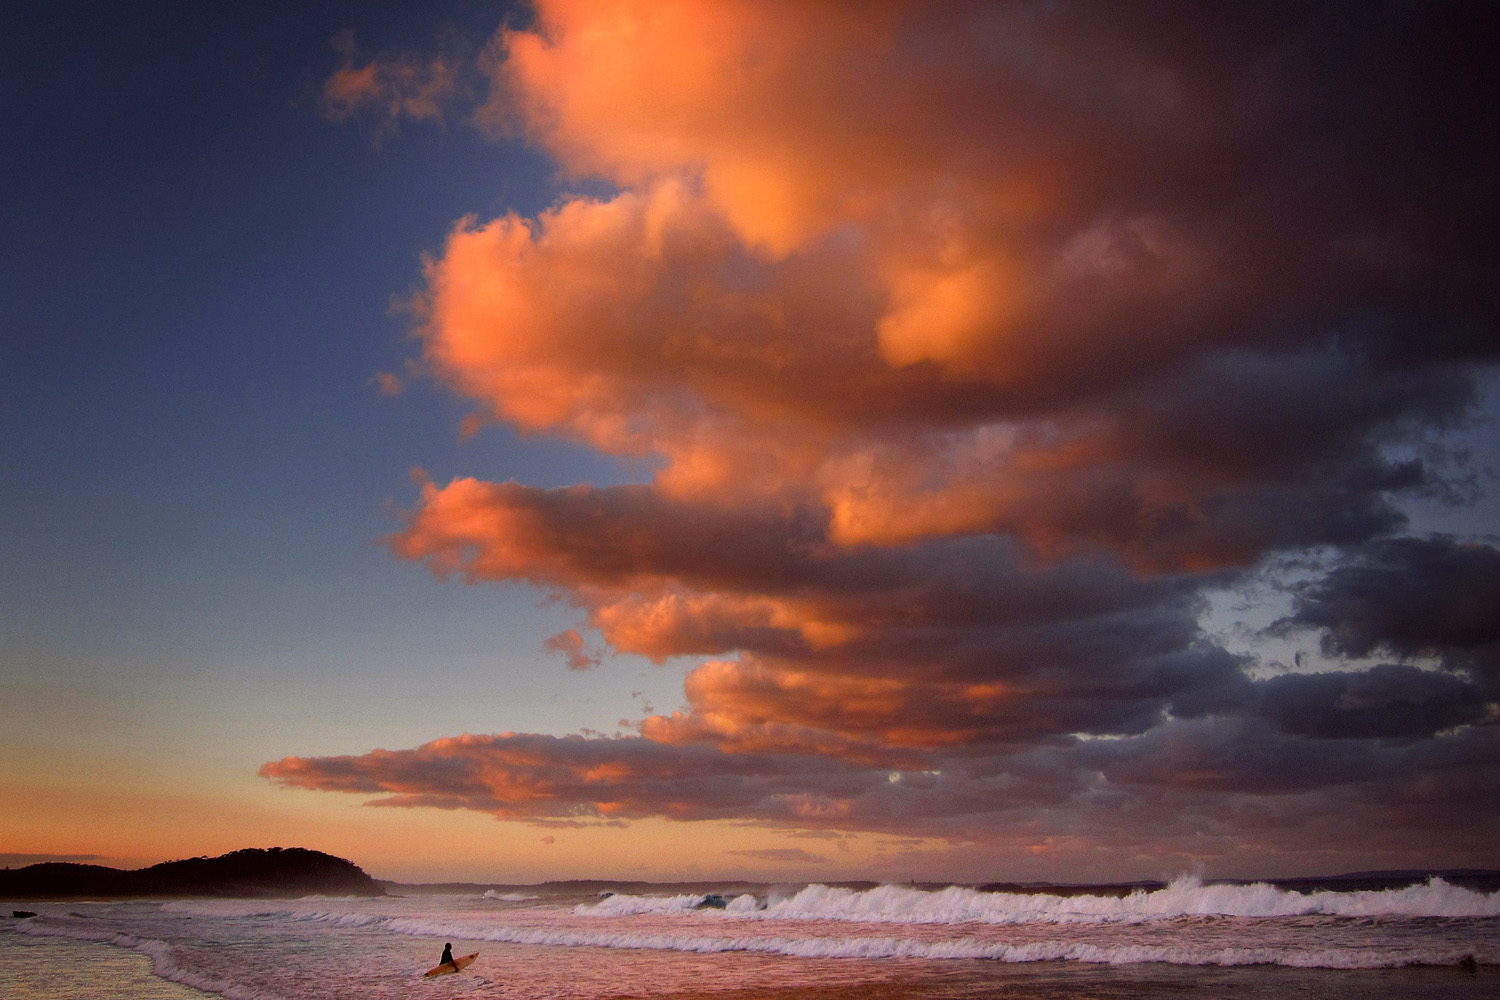 A surfer holding her board wades through the surf as clouds above are lit by the setting sun at Mollymook Beach on the south coast of New South Wales May 8, 2014.